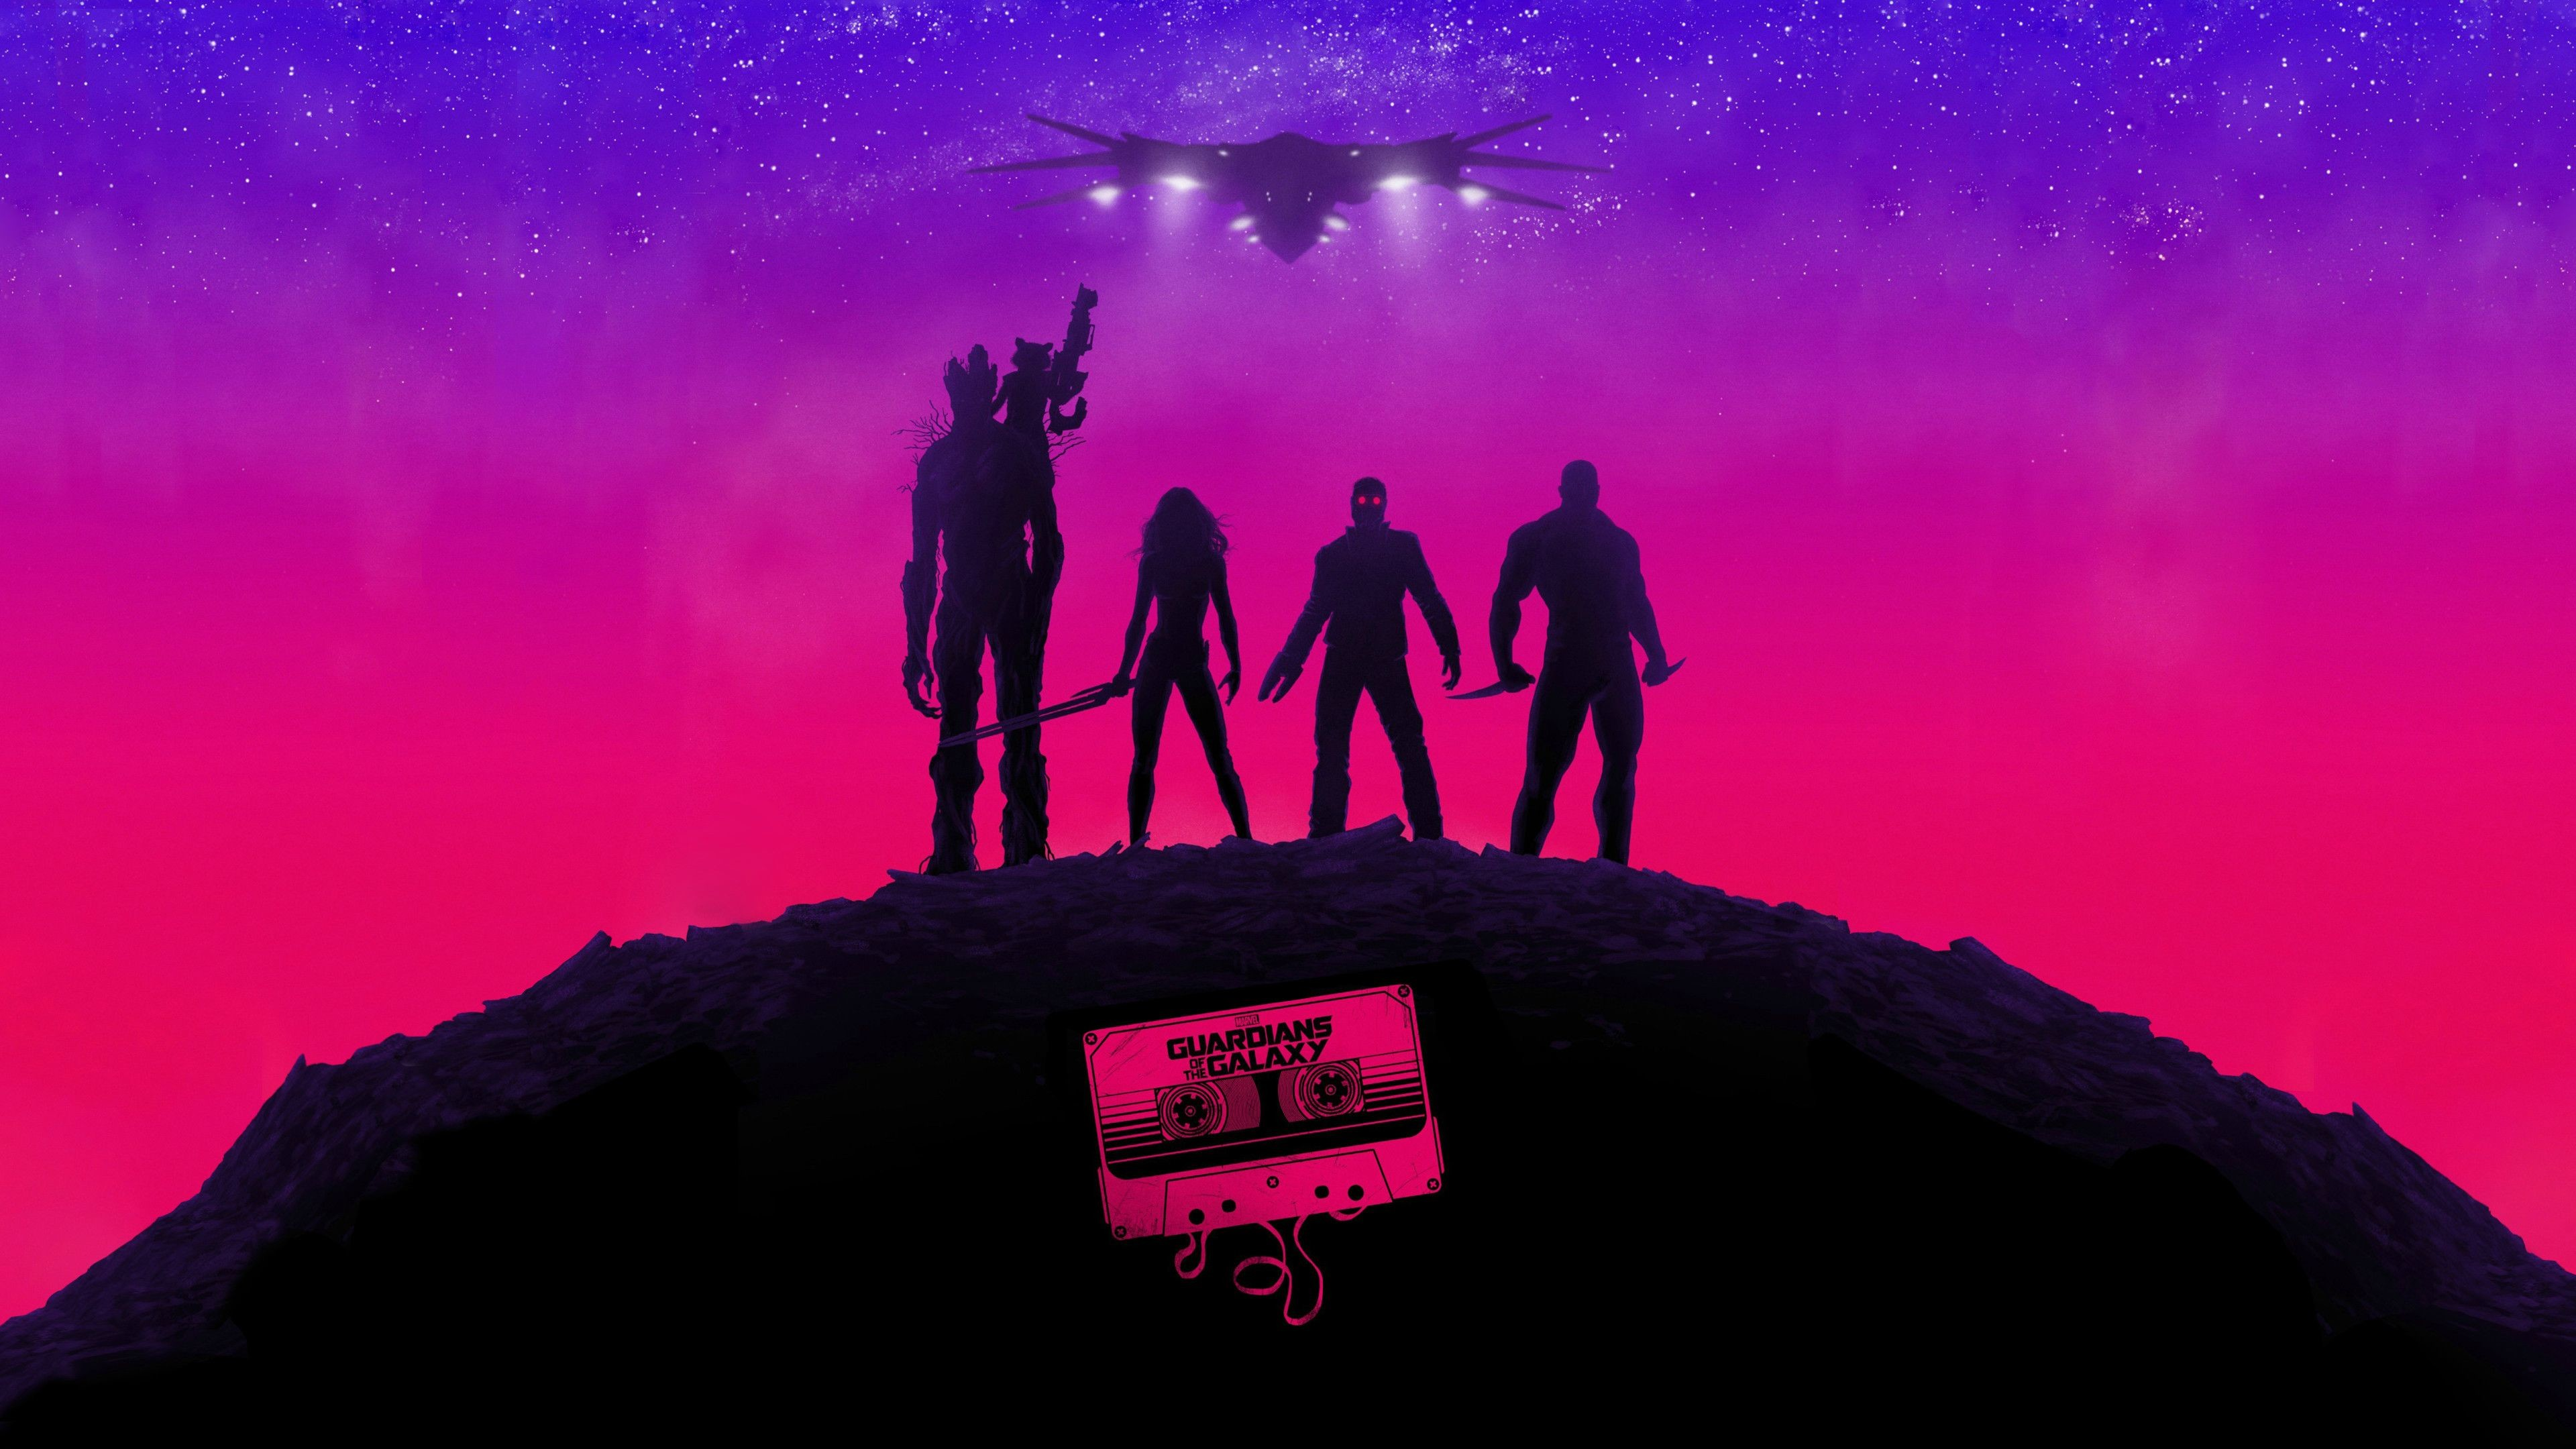 Star Lord Guardians of the Galaxy Marvel Star Lord Wallpaper – wallhaven.